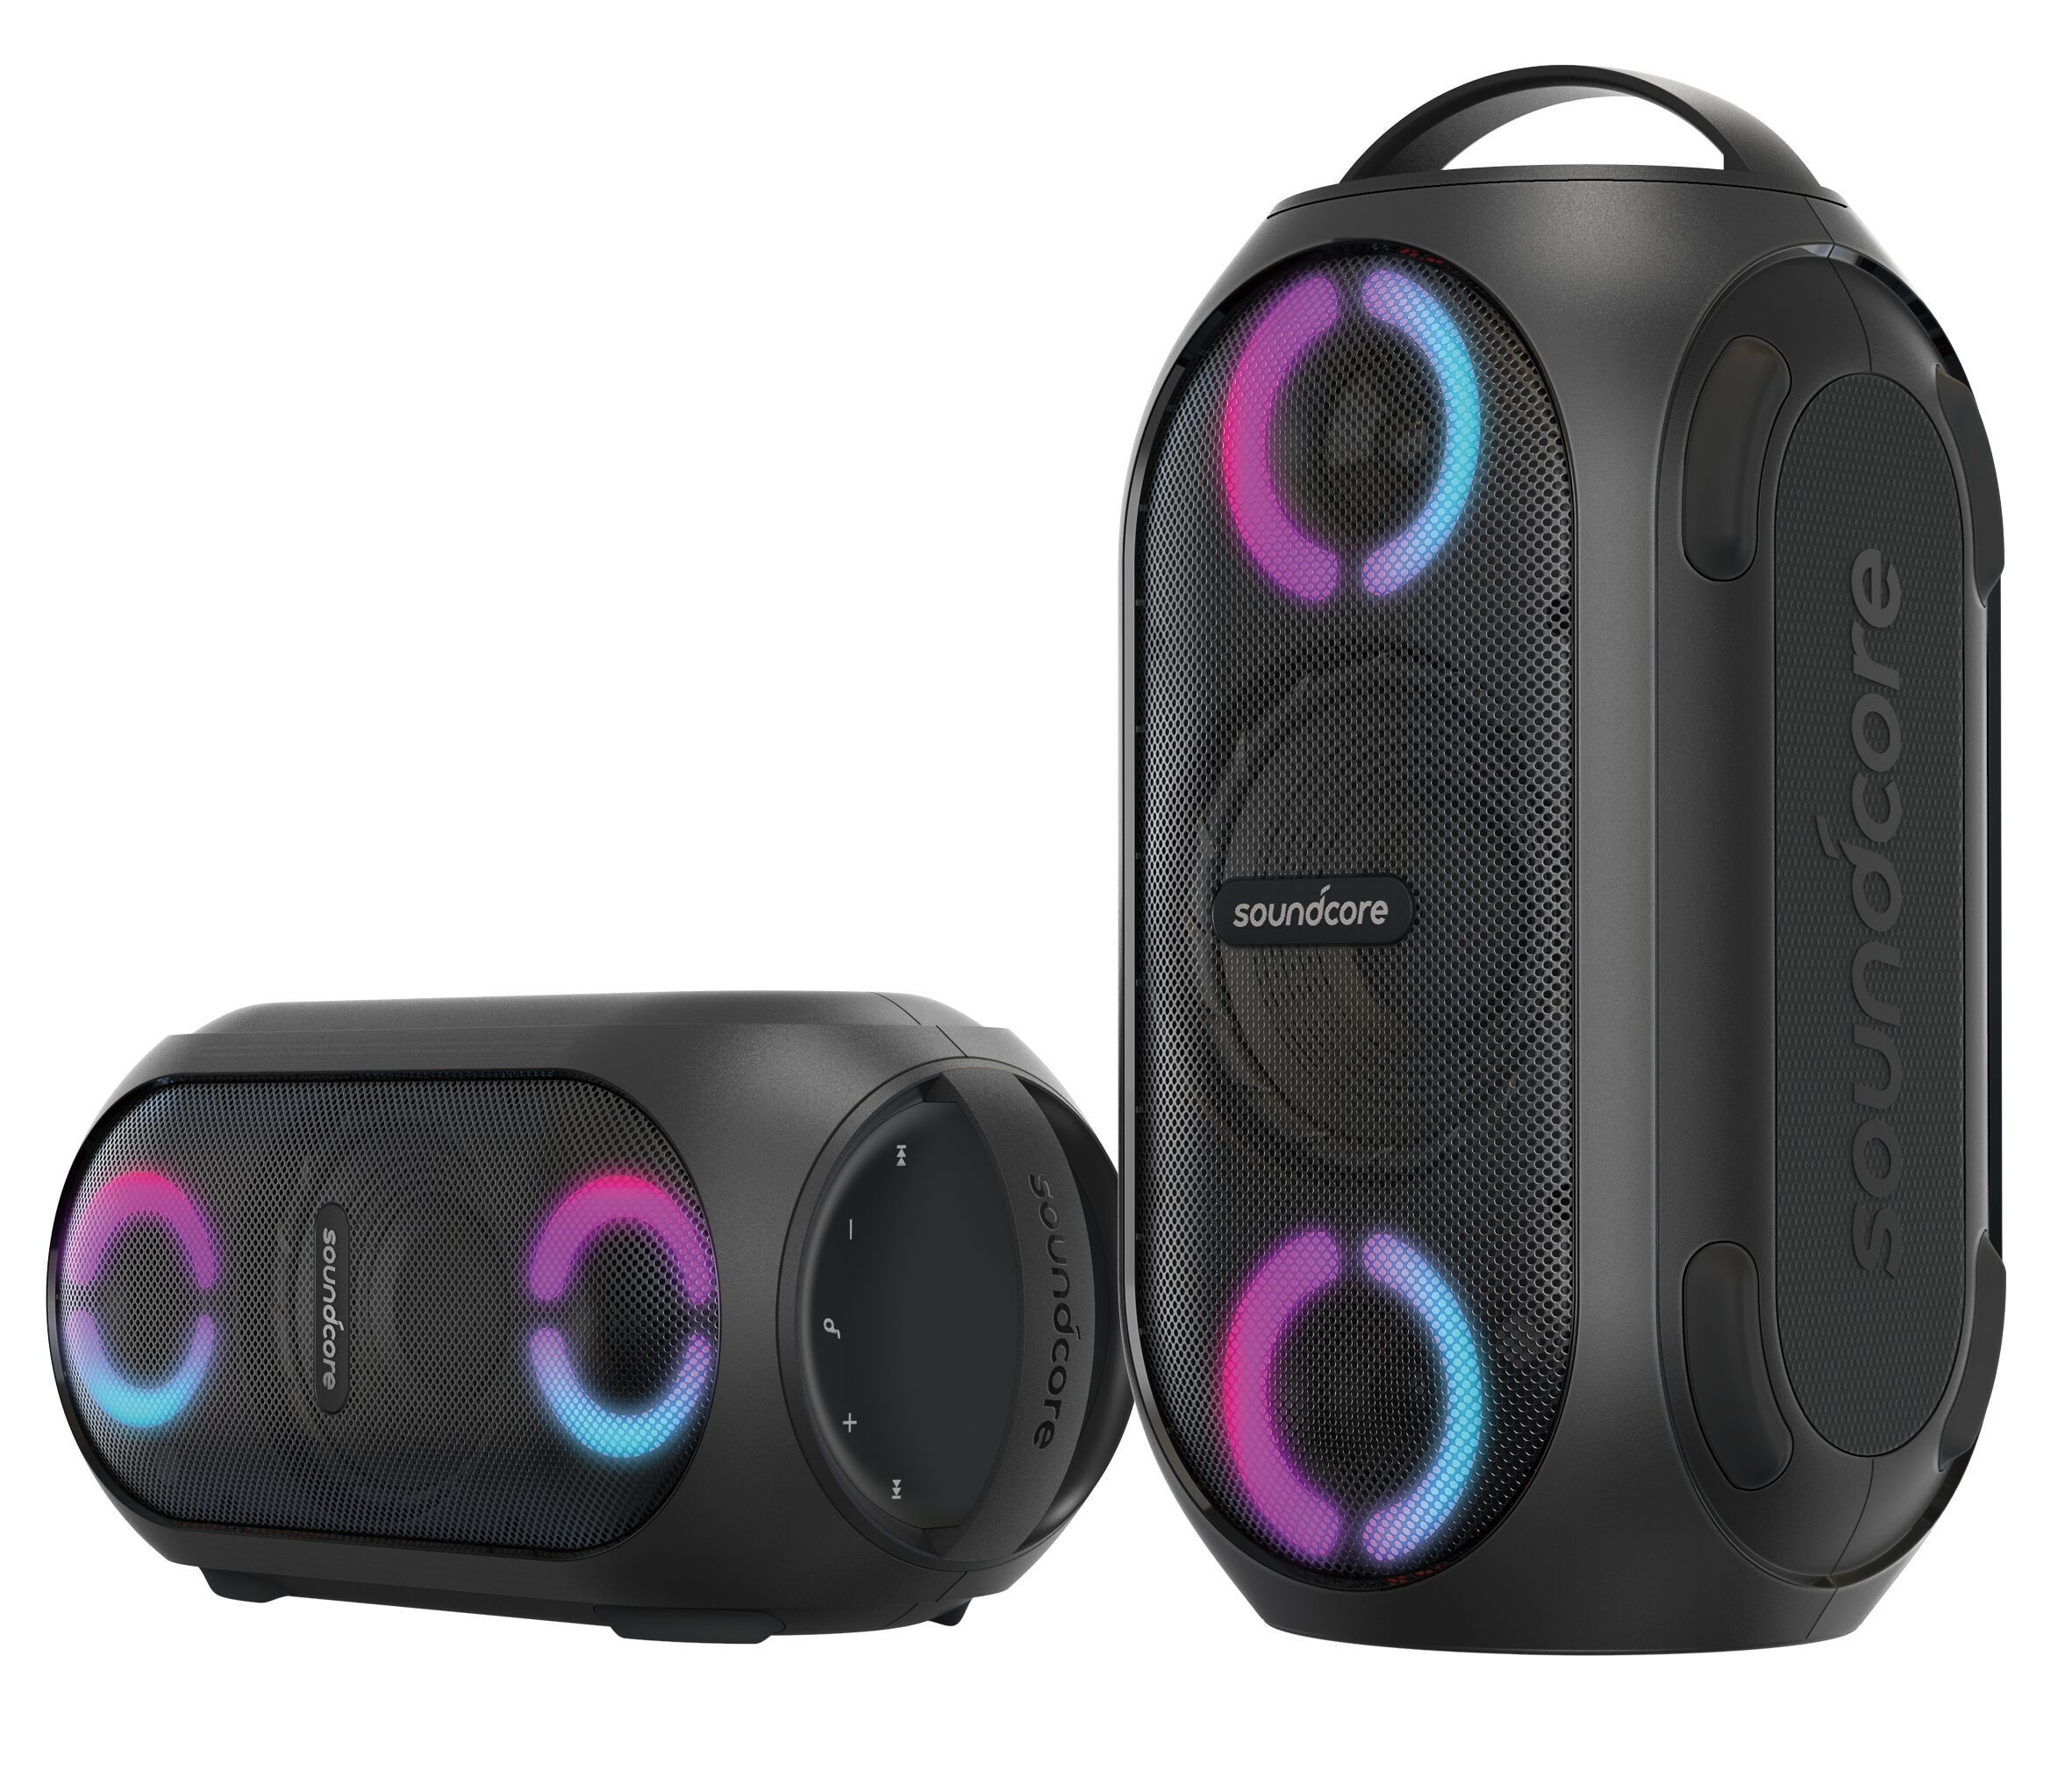 Soundcore kündigt neuen Party-Speaker Rave Mini an techboys.de • smarte News, auf den Punkt!